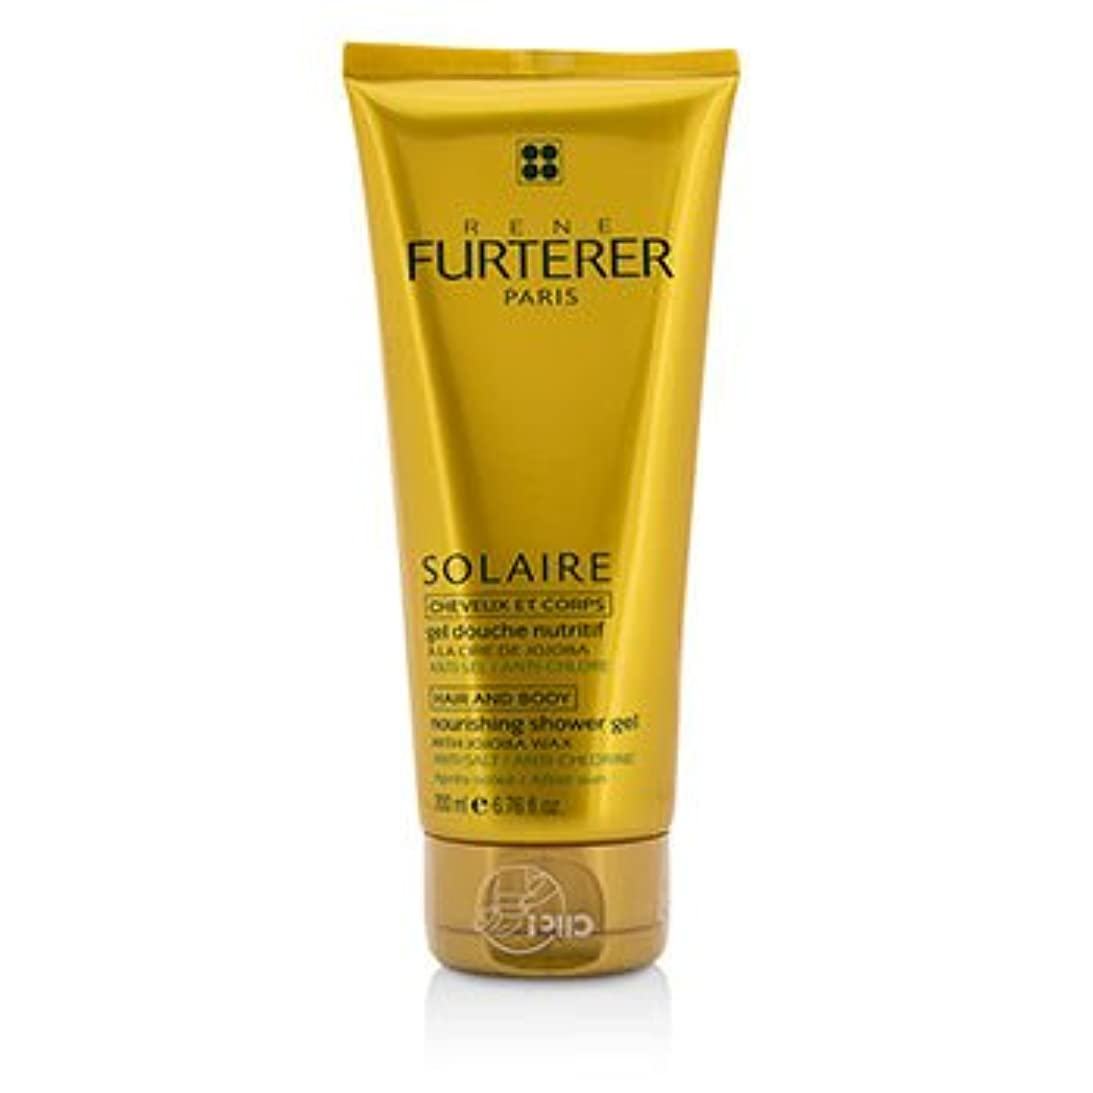 文房具換気する宣言[Rene Furterer] Solaire Nourishing Shower Gel with Jojoba Wax (Hair and Body) 200ml/6.76oz